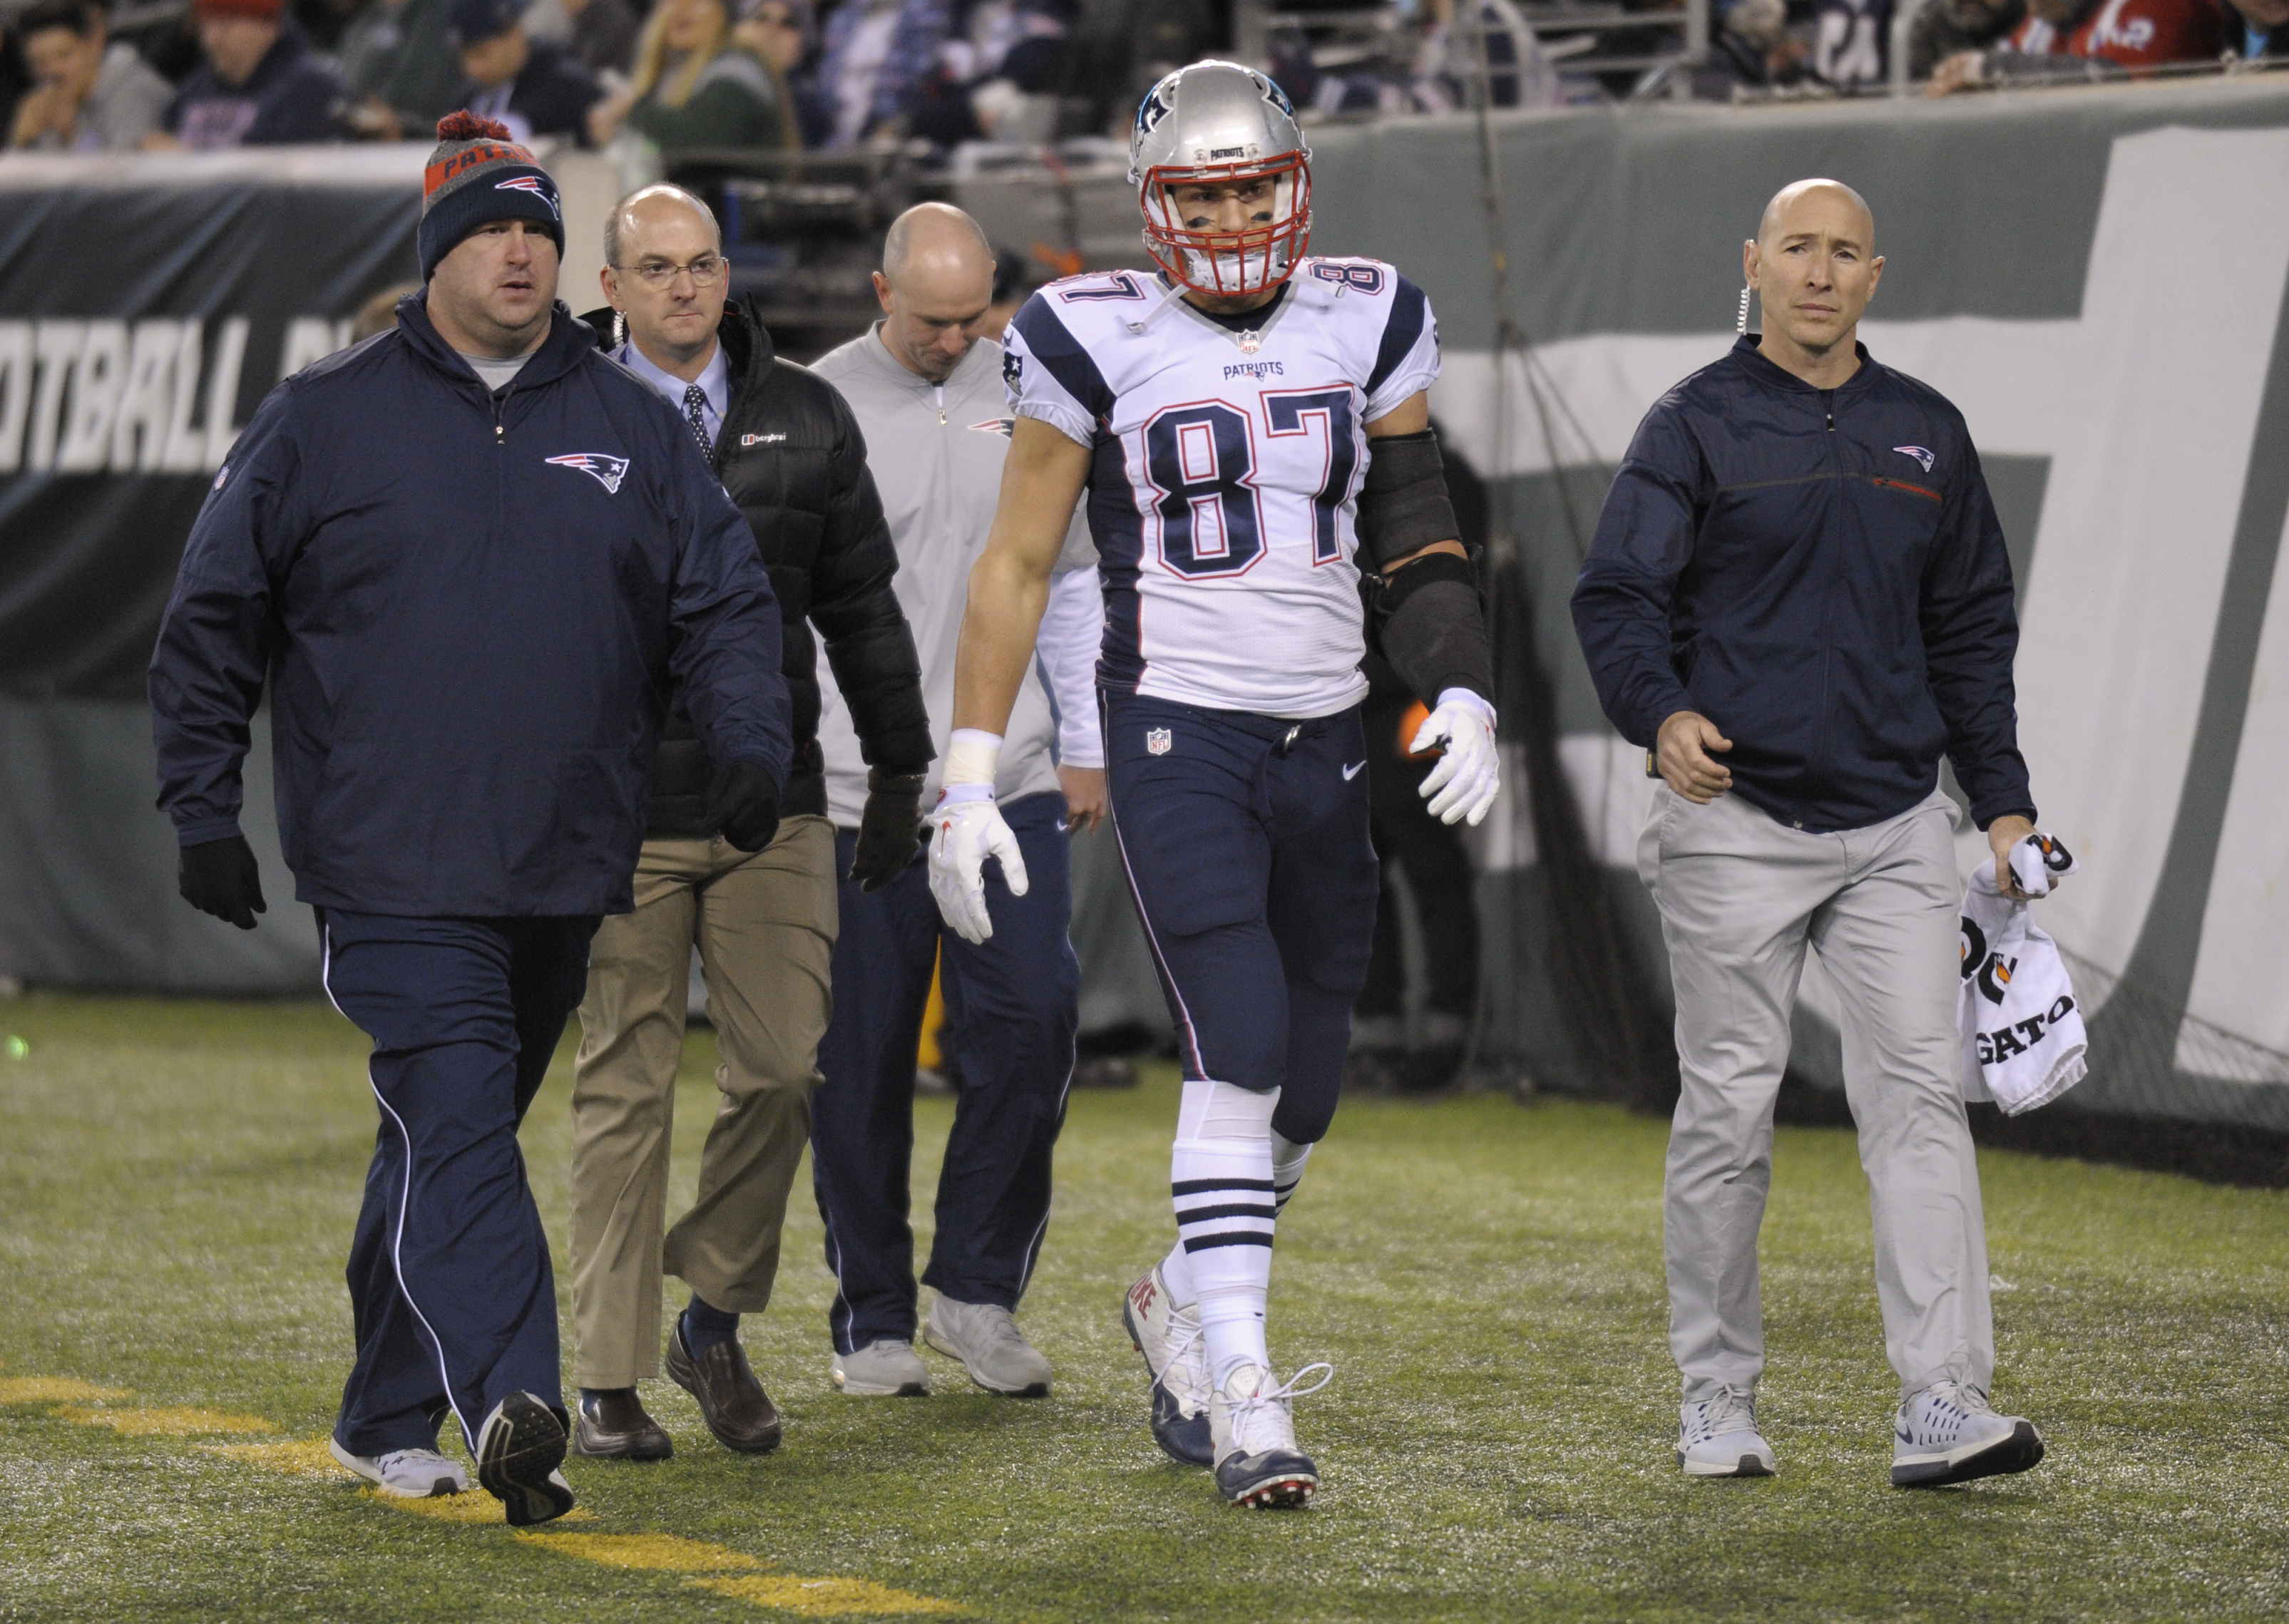 New England Patriots tight end Rob Gronkowski (87) walks off the field with an injury during the second quarter of an NFL football game against the New York Jets, Sunday, Nov. 27, 2016, in East Rutherford, N.J. (AP Photo/Bill Kostroun)